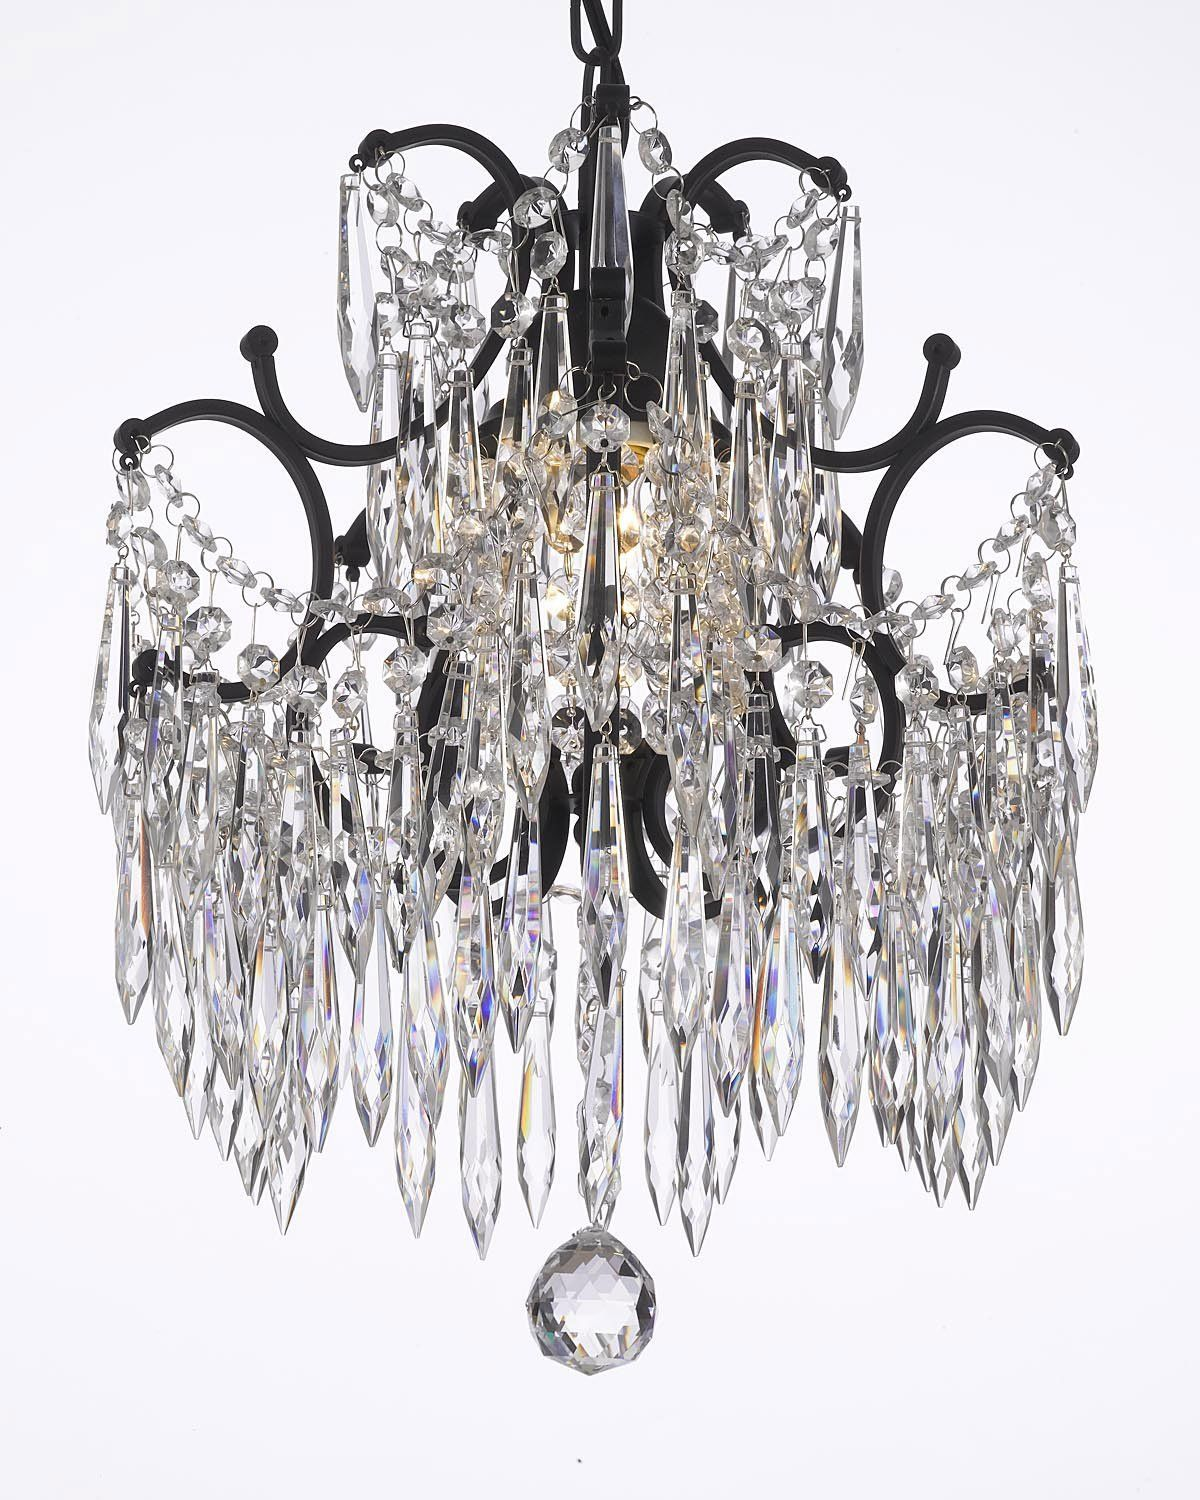 Chandelier Wrought Iron Crystal Chandeliers Dressed With Icicle Crystals H14 W11 Amazon Co Crystal Chandelier Geometric Pendant Wrought Iron Chandeliers